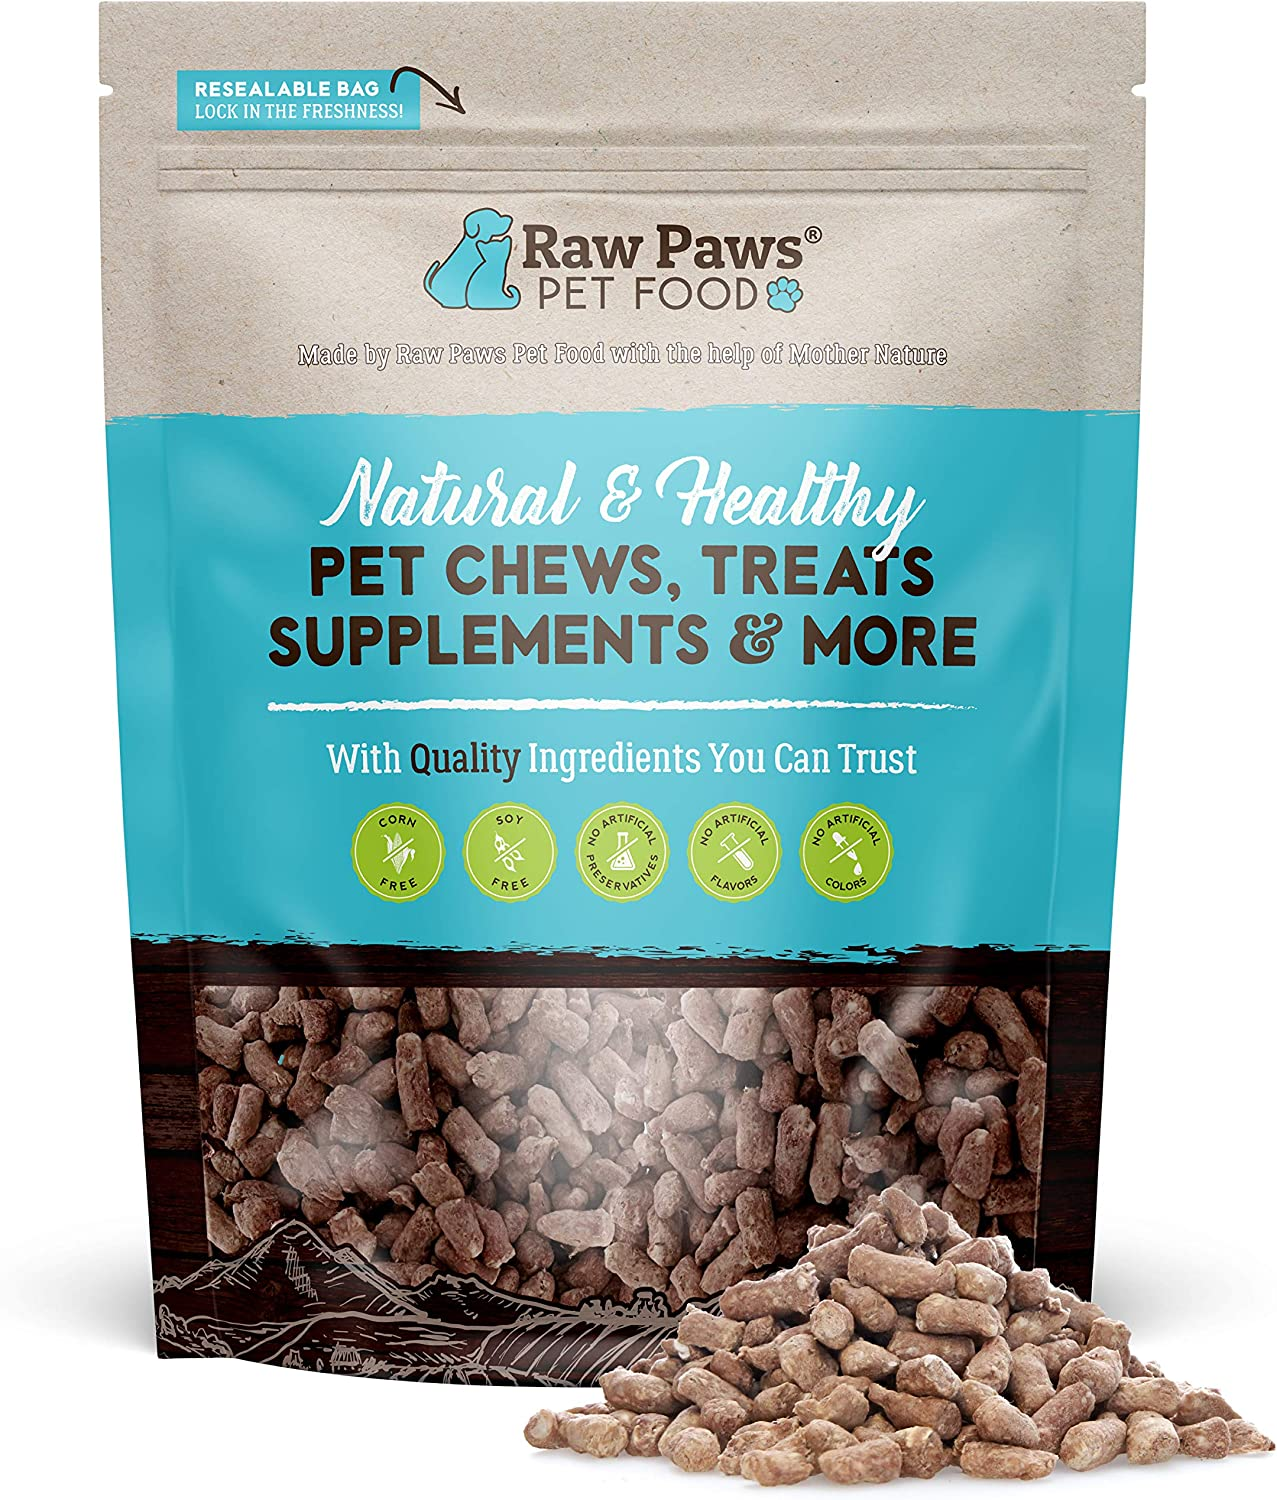 Raw Paws Freeze Dried Raw Ferret Food, Beef 16-oz - Made in USA - Premium, Grain Free Ferret Diet for Small, Adult, Senior & Baby Ferrets - Also use as Natural Ferret Treats for Rewarding & Training